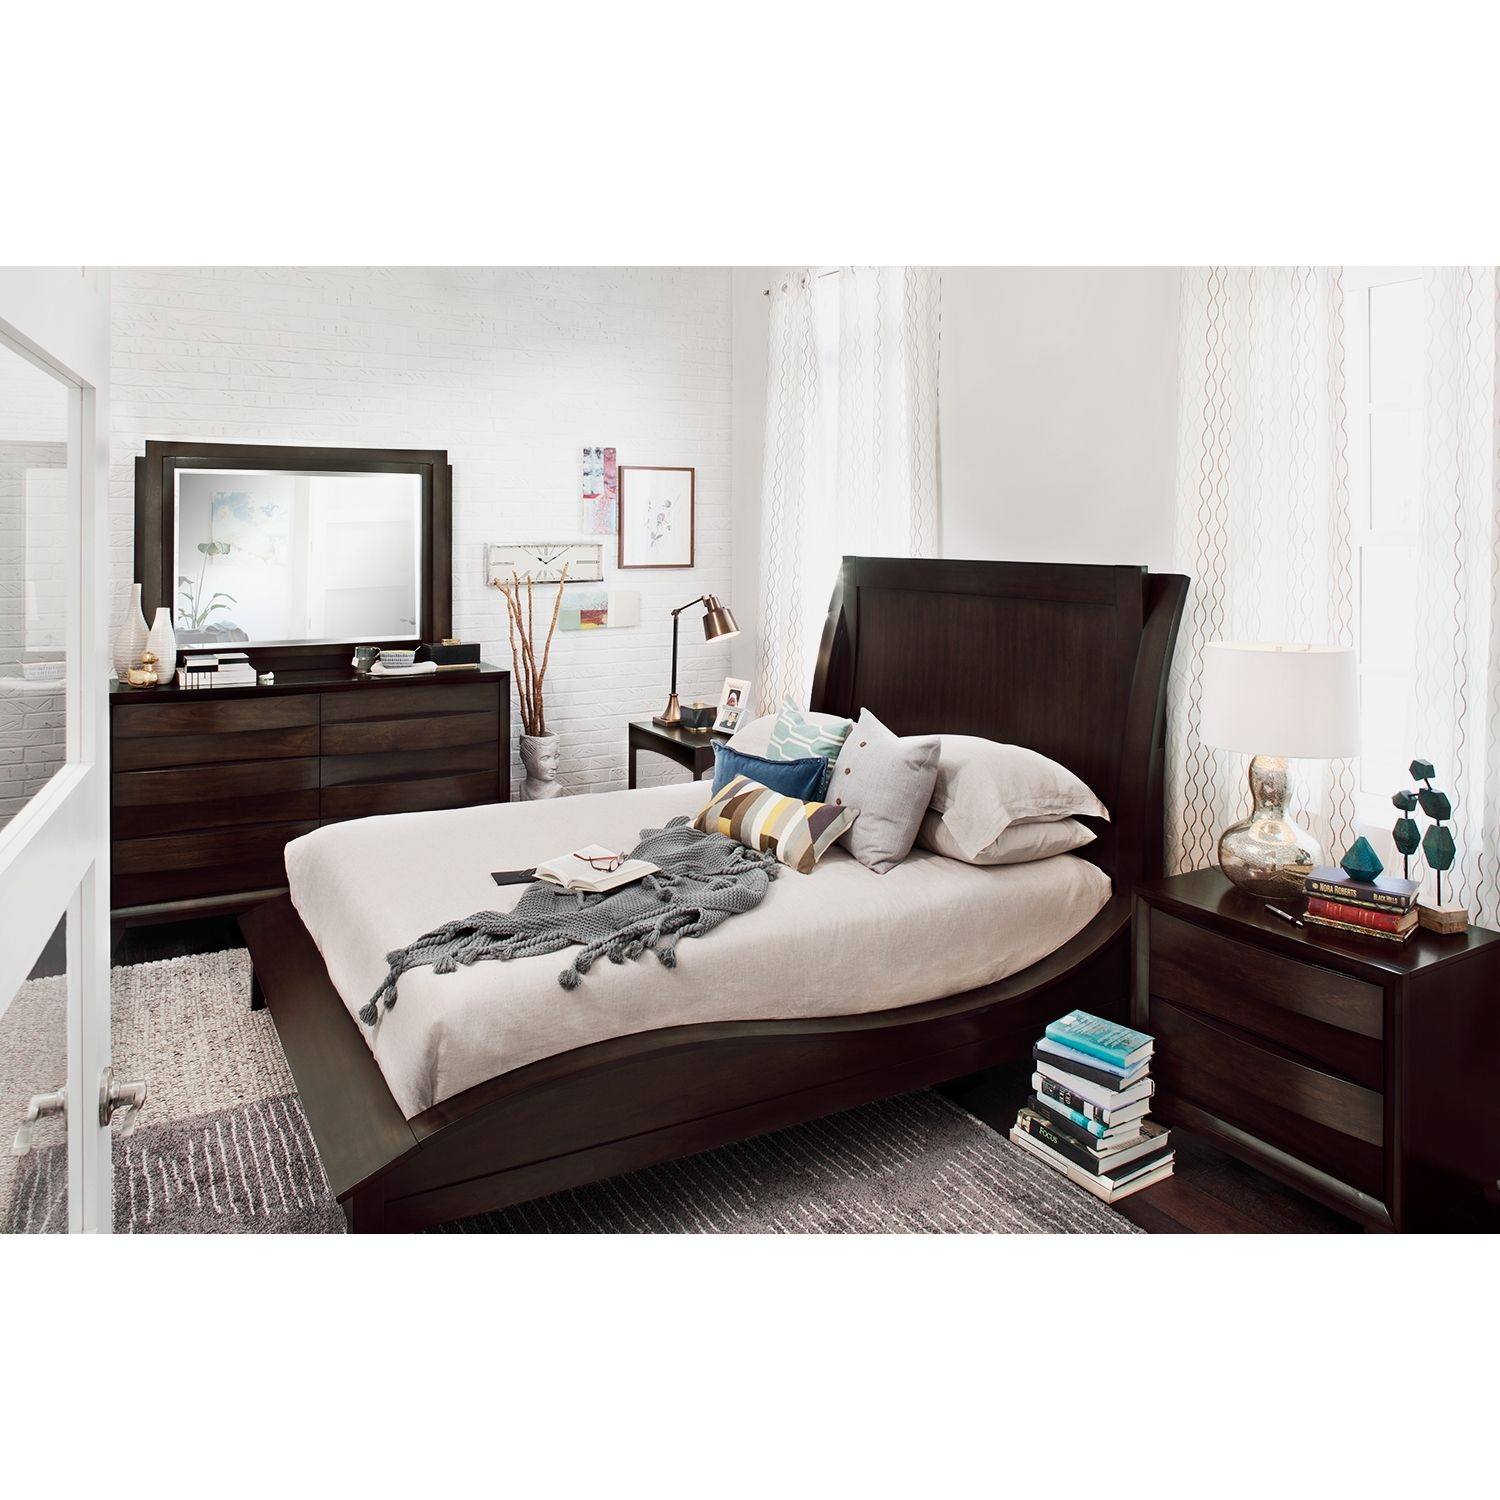 Incroyable Cascade Merlot 6 Pc. Queen Bedroom | Value City Furniture